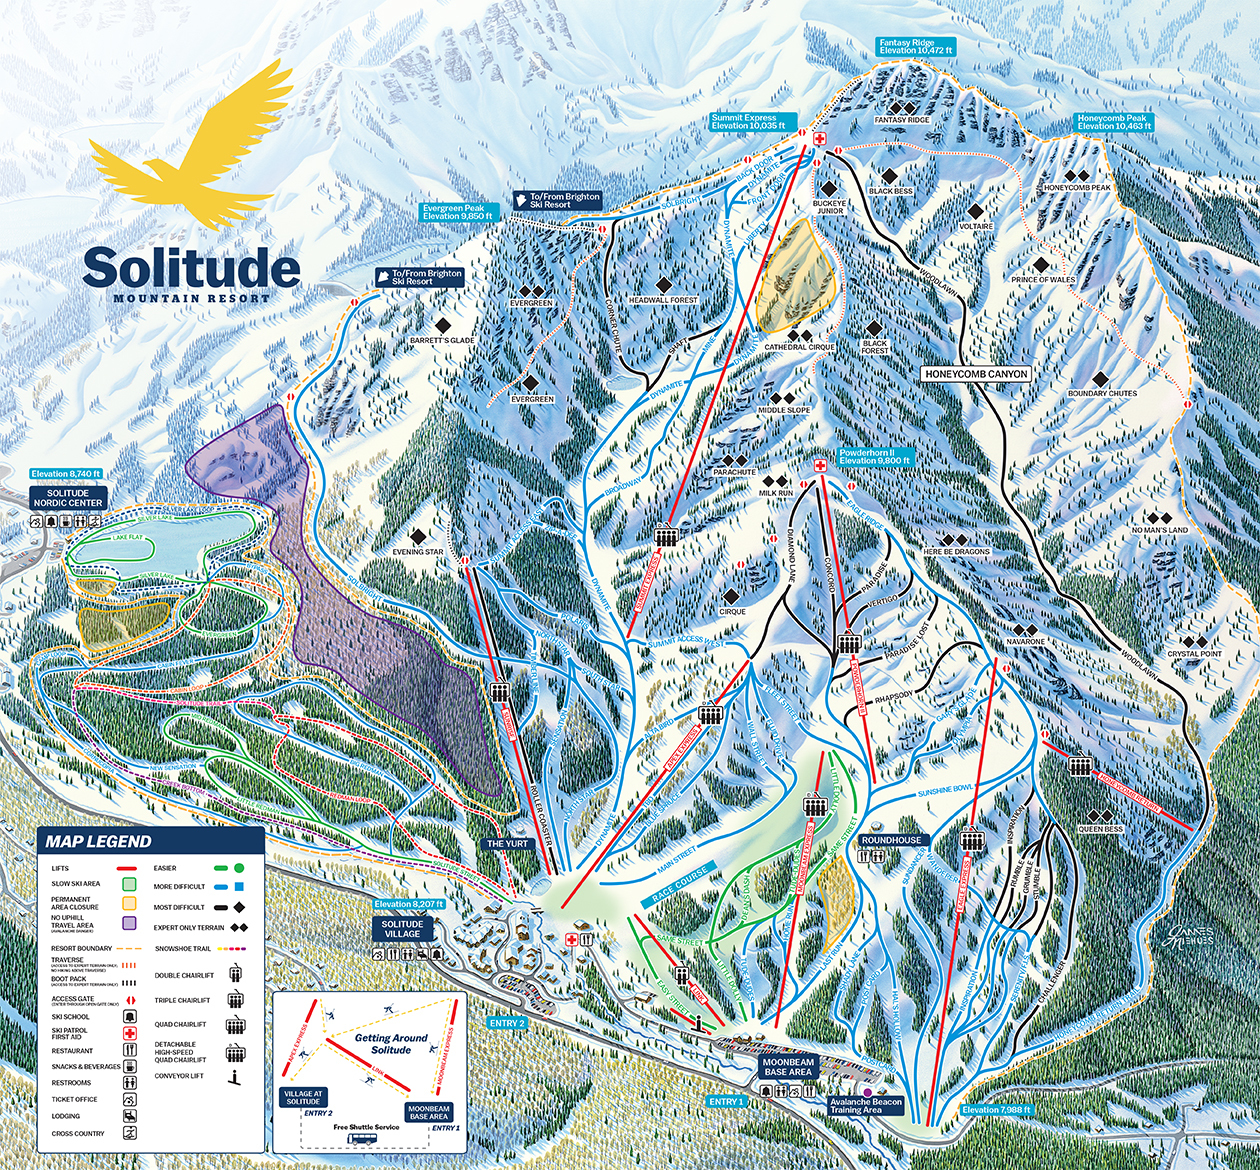 Solitude Mountain Resort Trail Map - Map of colorado ski resorts and cities